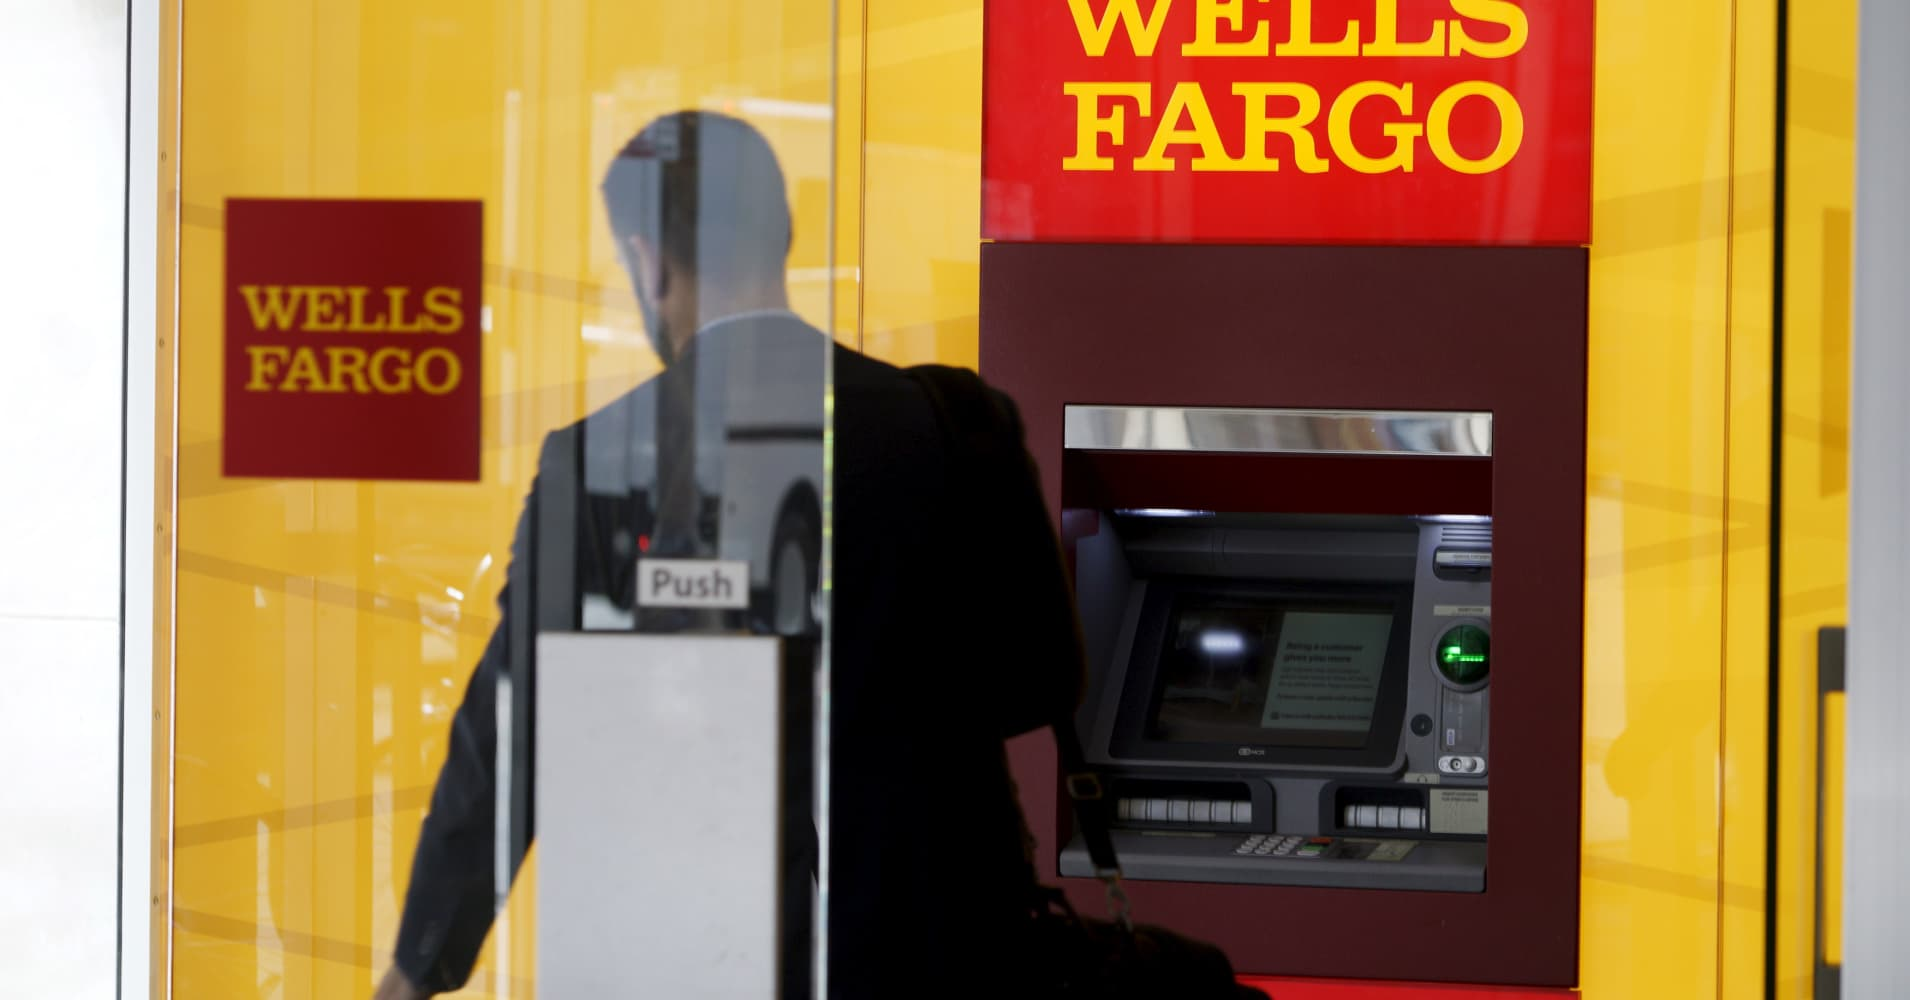 wells fargo has put scandal in the rearview kbw analysts say